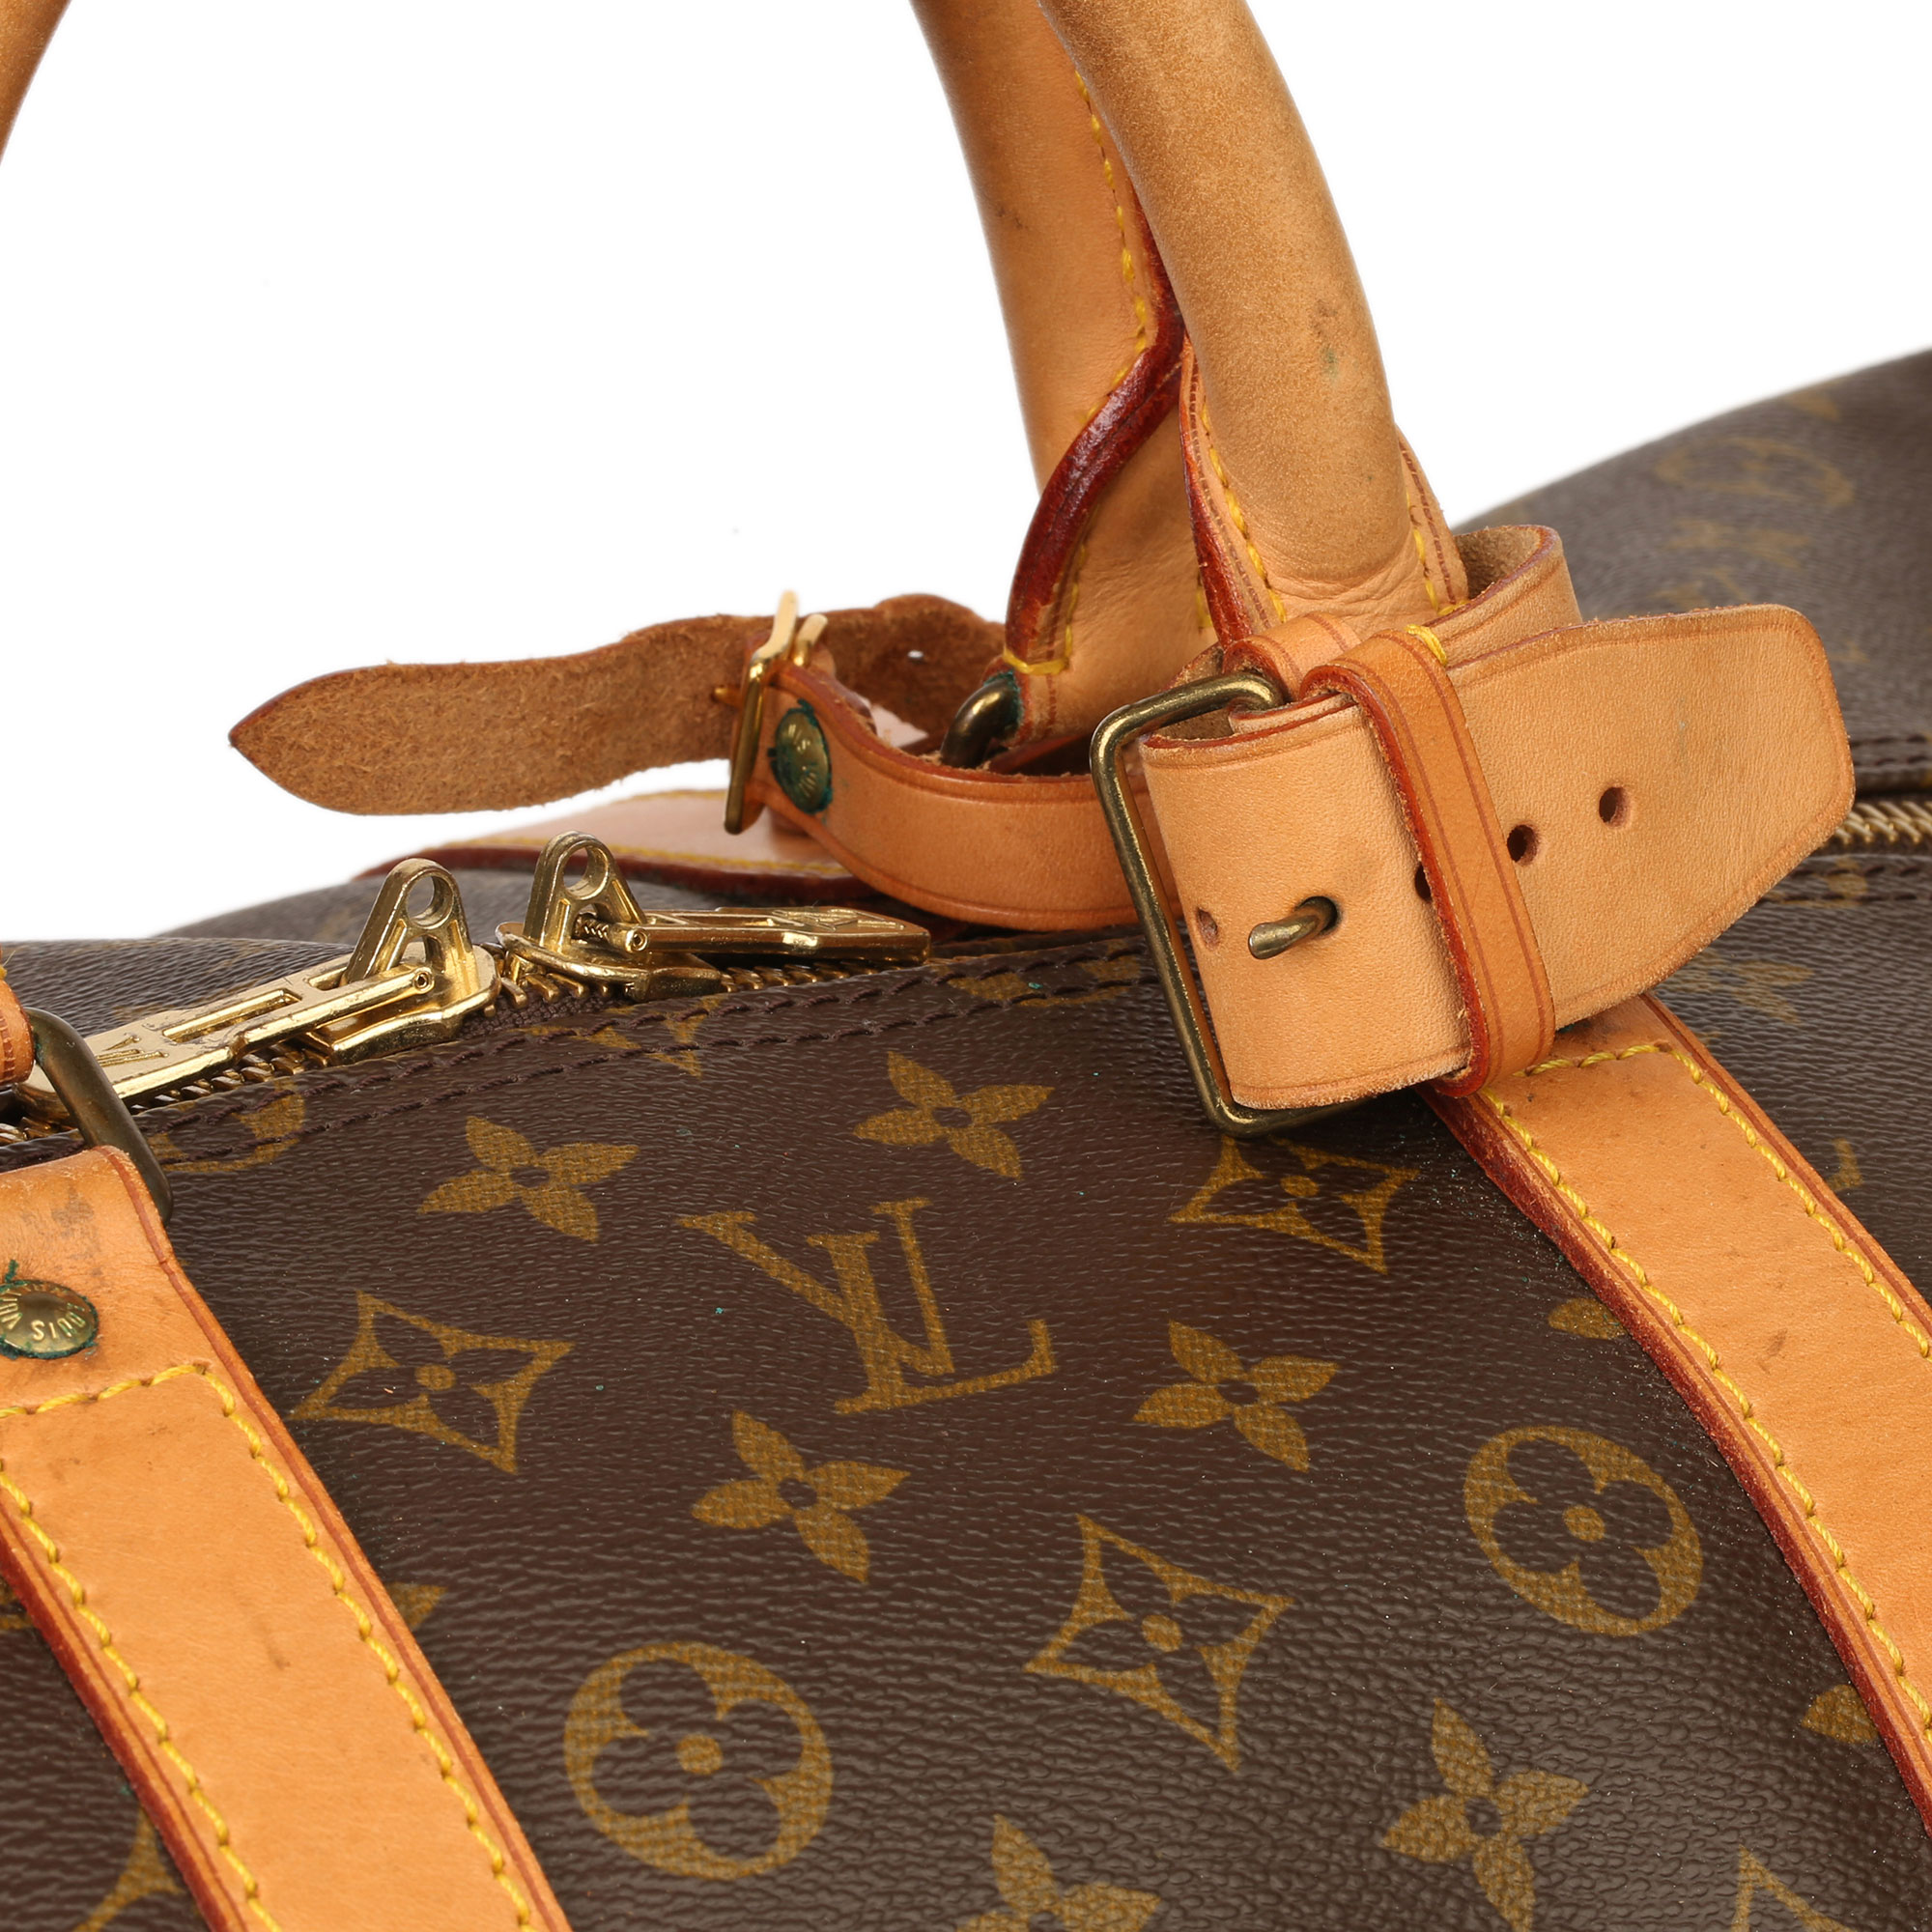 Louis Vuitton Brown Monogram Coated Canvas & Vachetta Leather Vintage Keepall 55 - Image 9 of 14